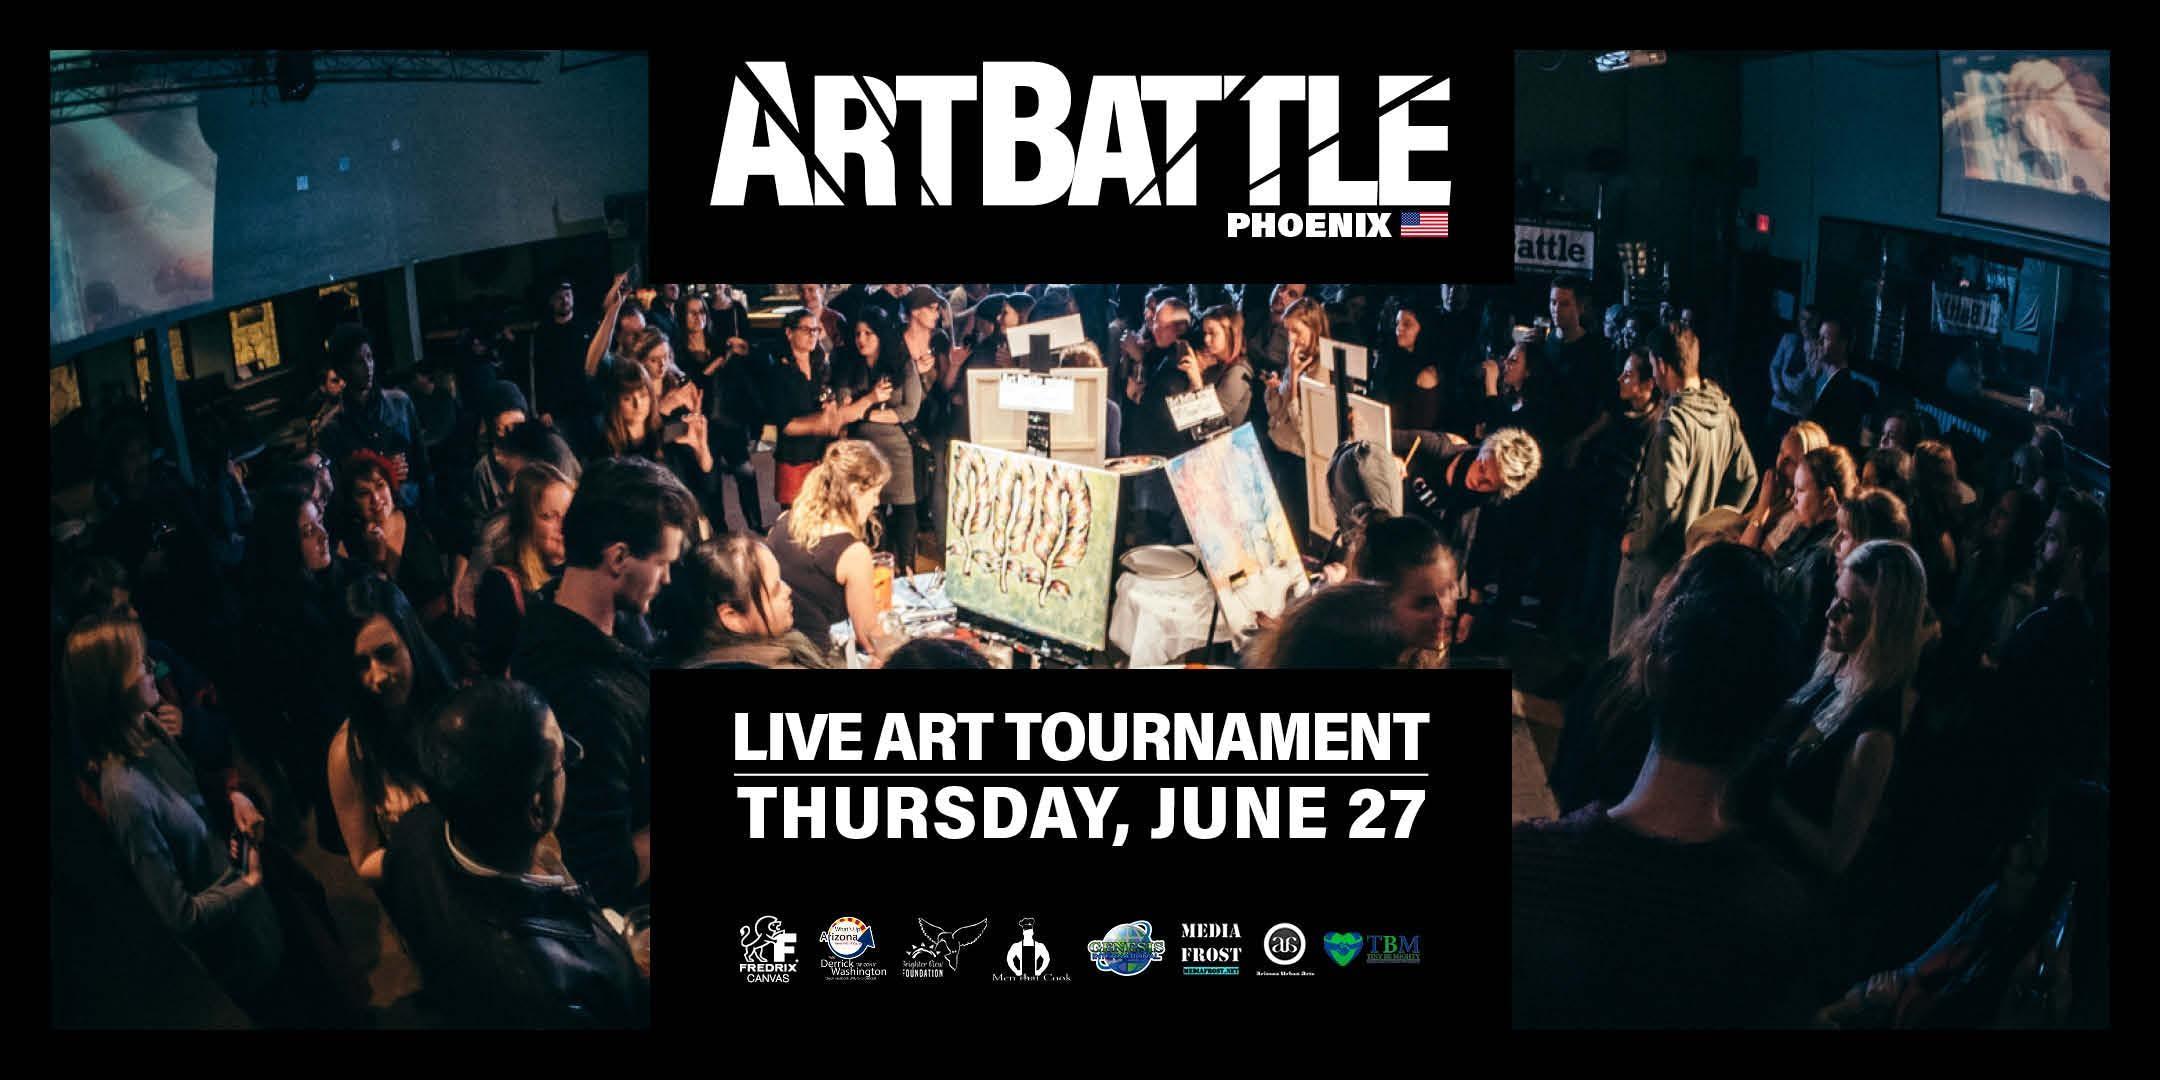 Art Battle Phoenix - June 27, 2019